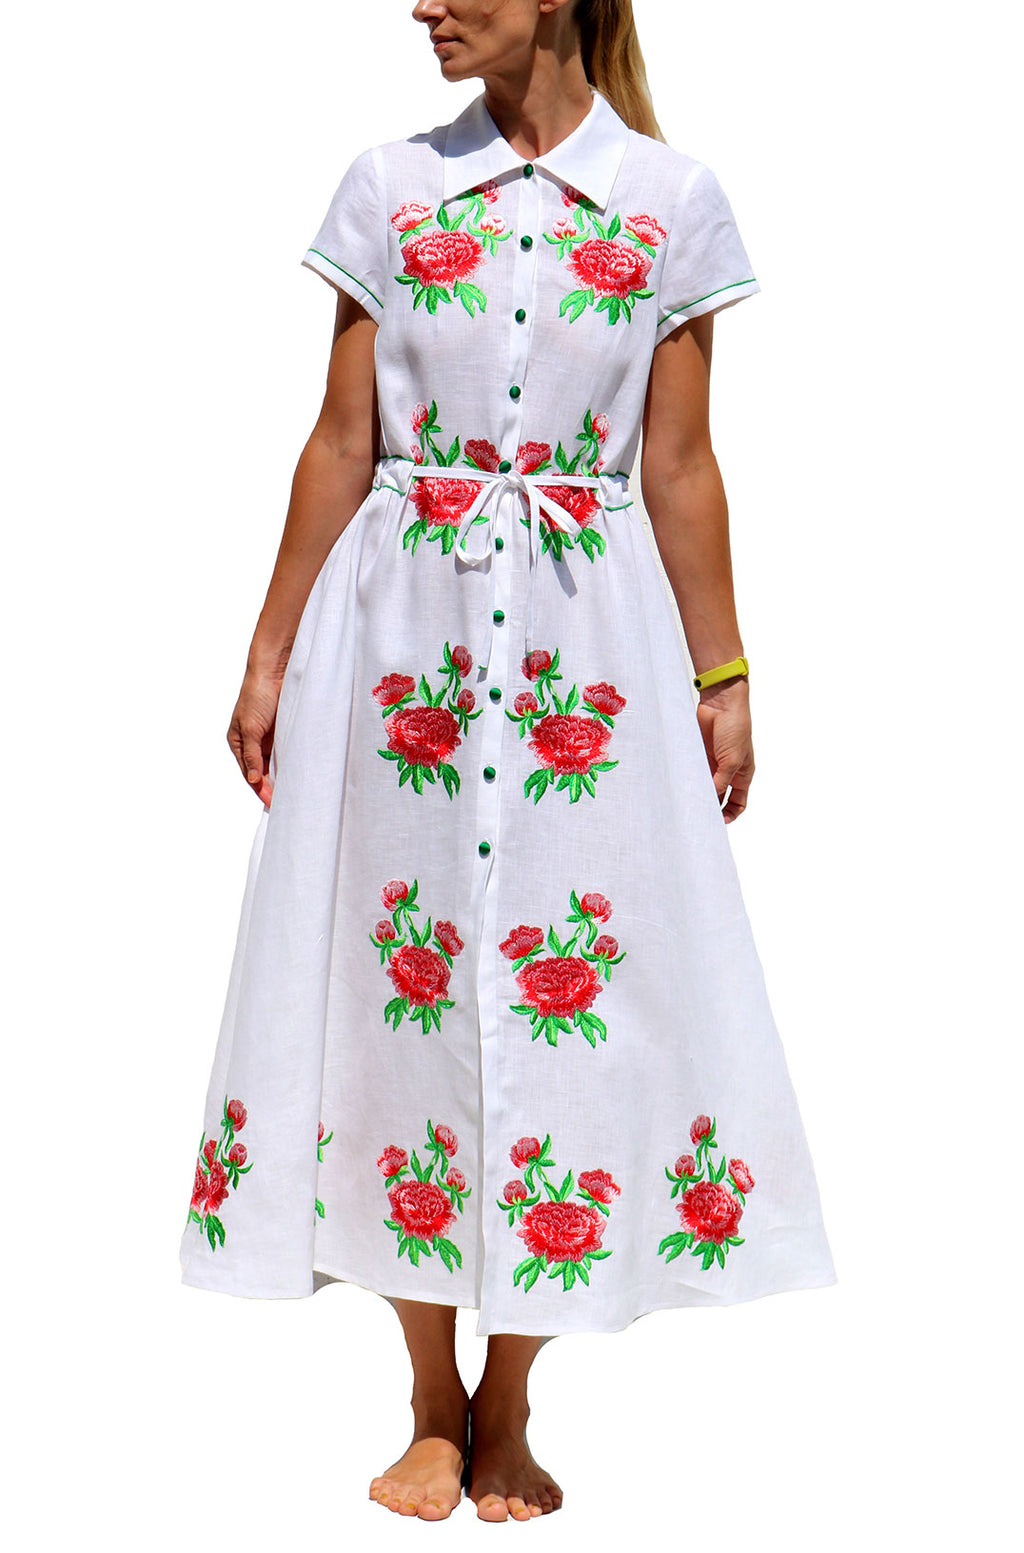 White Linen Dress with Red Flowers Embroidery Button Front Summer Dress